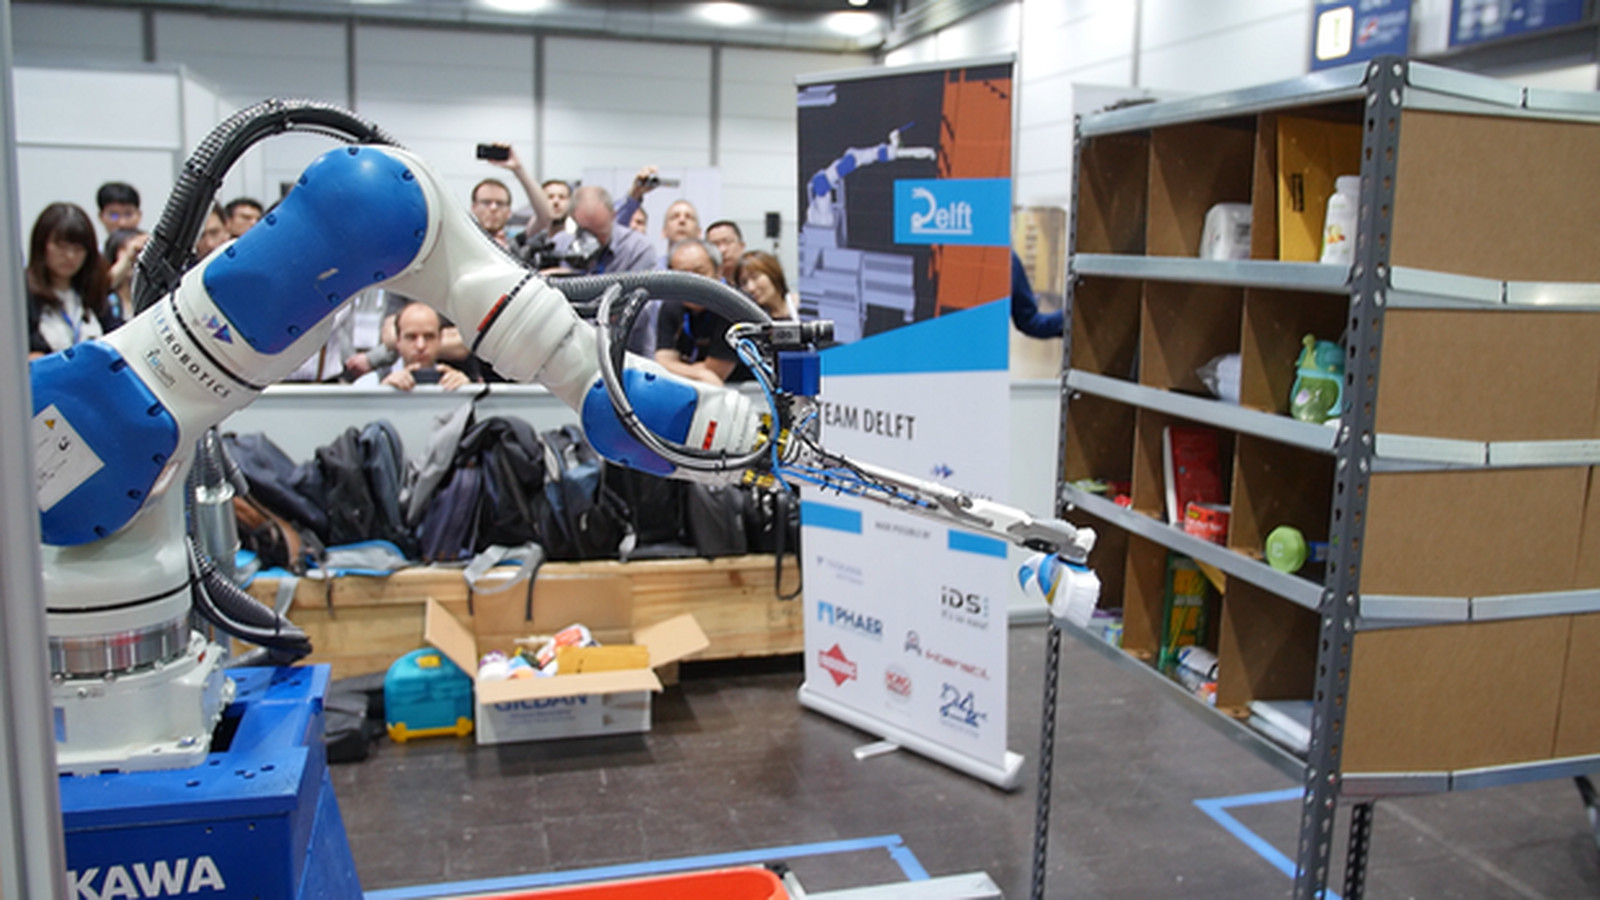 Amazon S Latest Robot Champion Uses Deep Learning To Stock